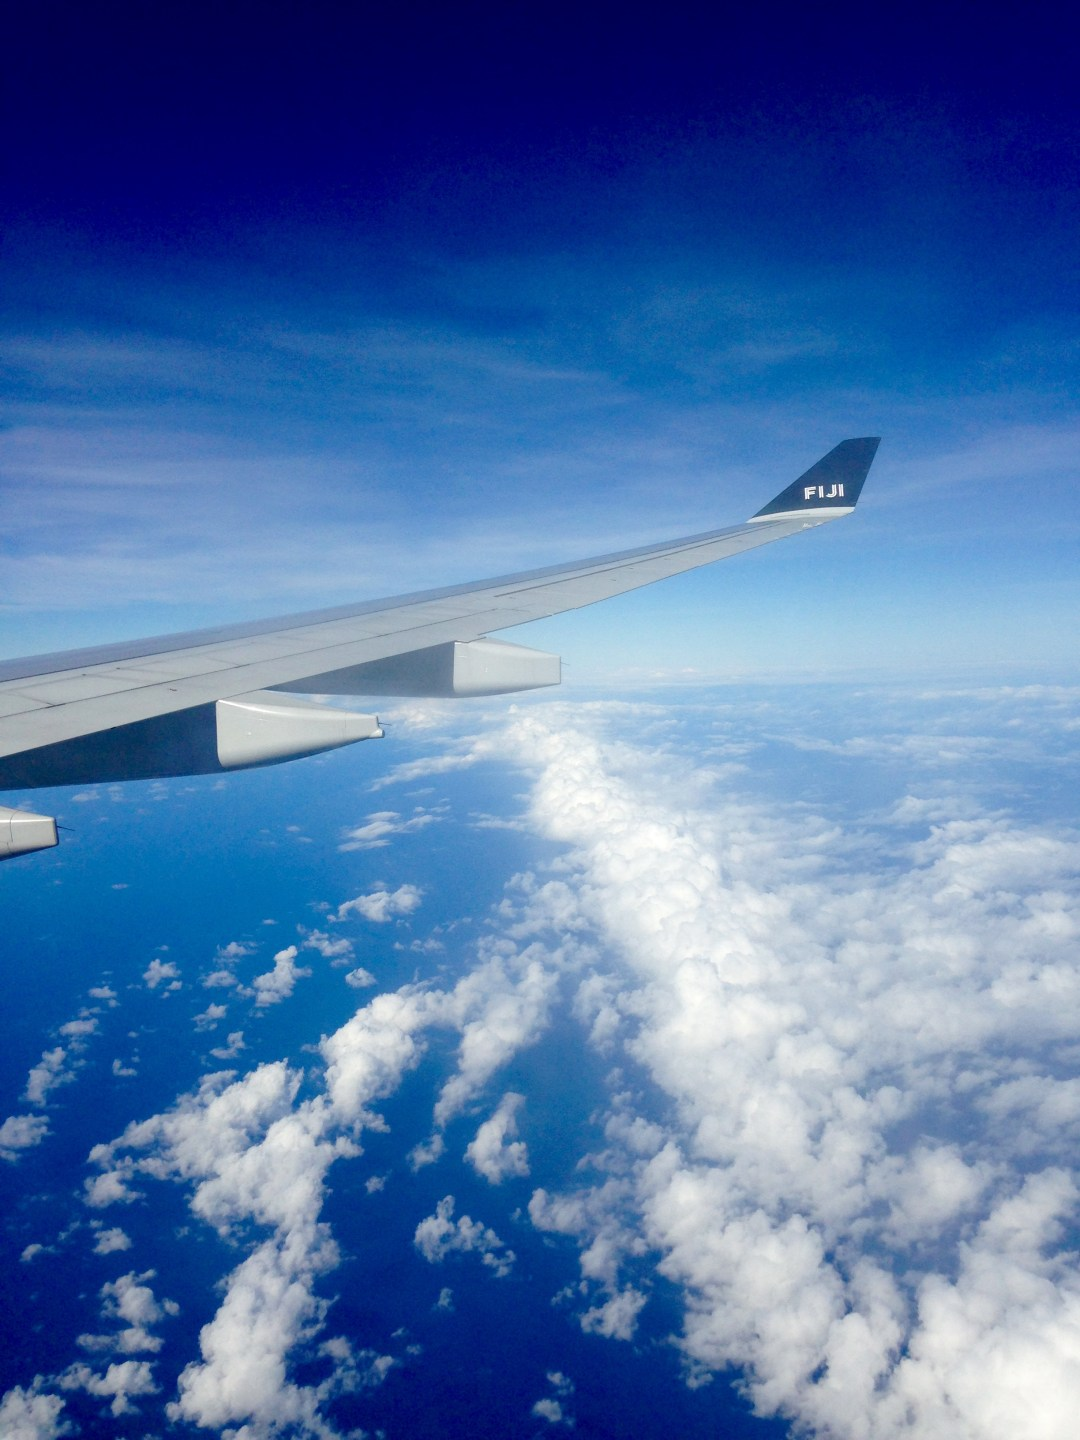 Blue skies and blue waters with a plane wing in full view on a flight from Nadi Fiji to Cairns Australia with Fiji Airways